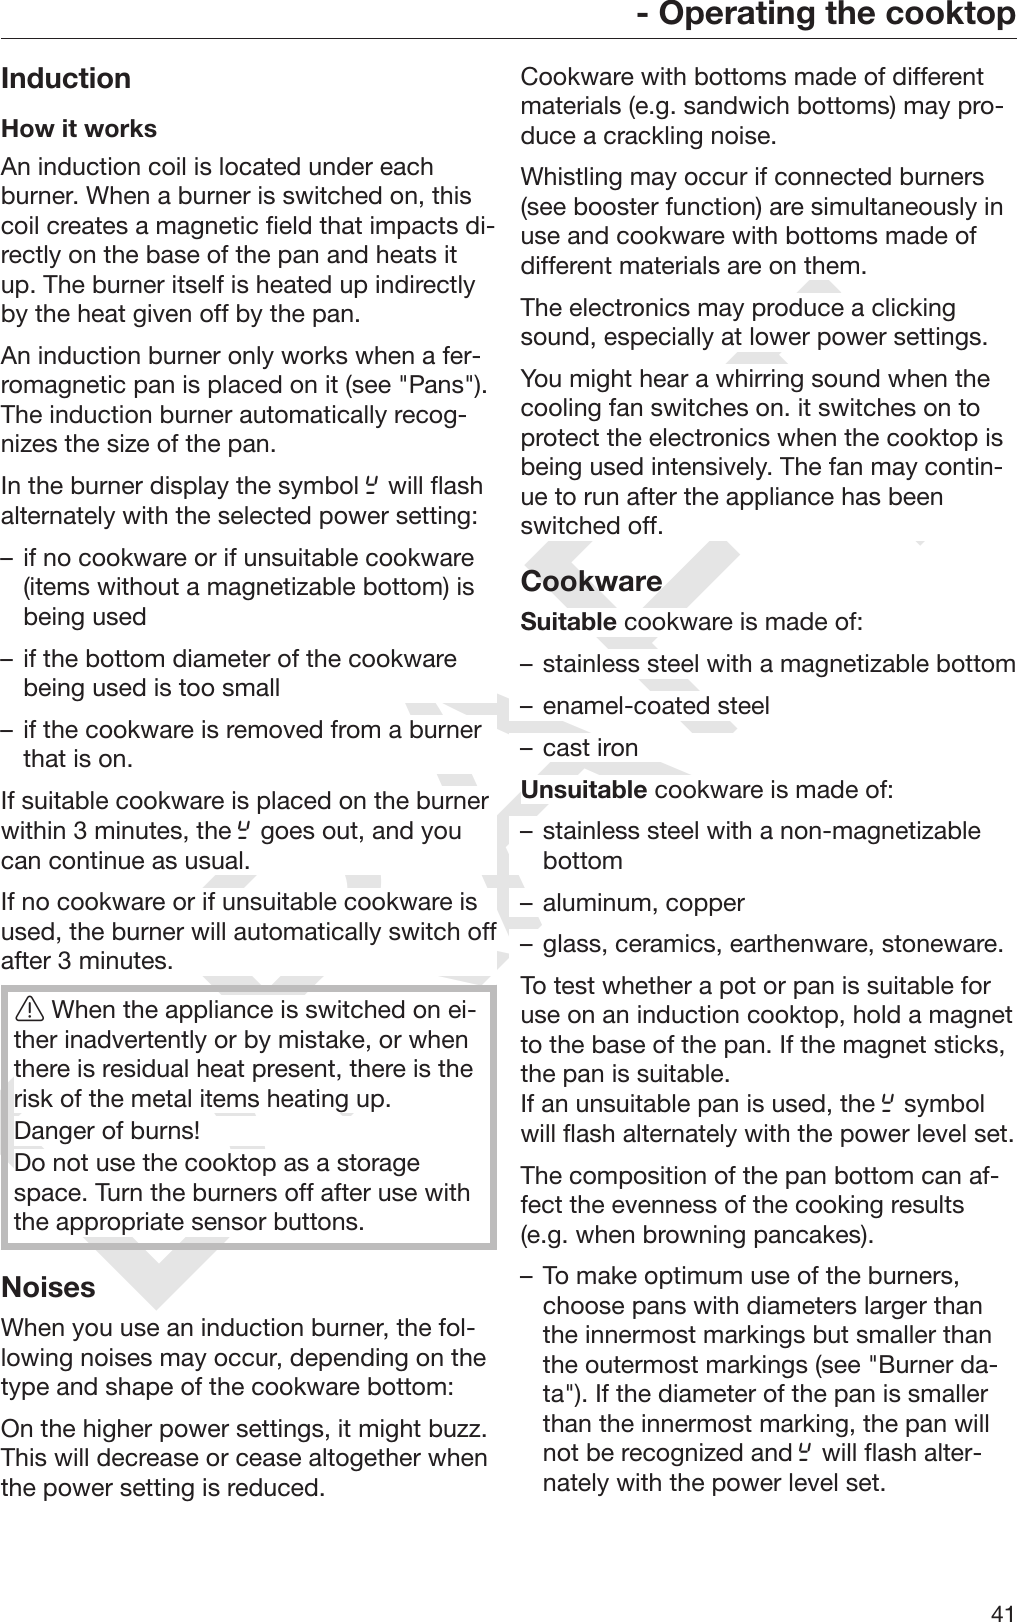 miele oven rotisserie instructions